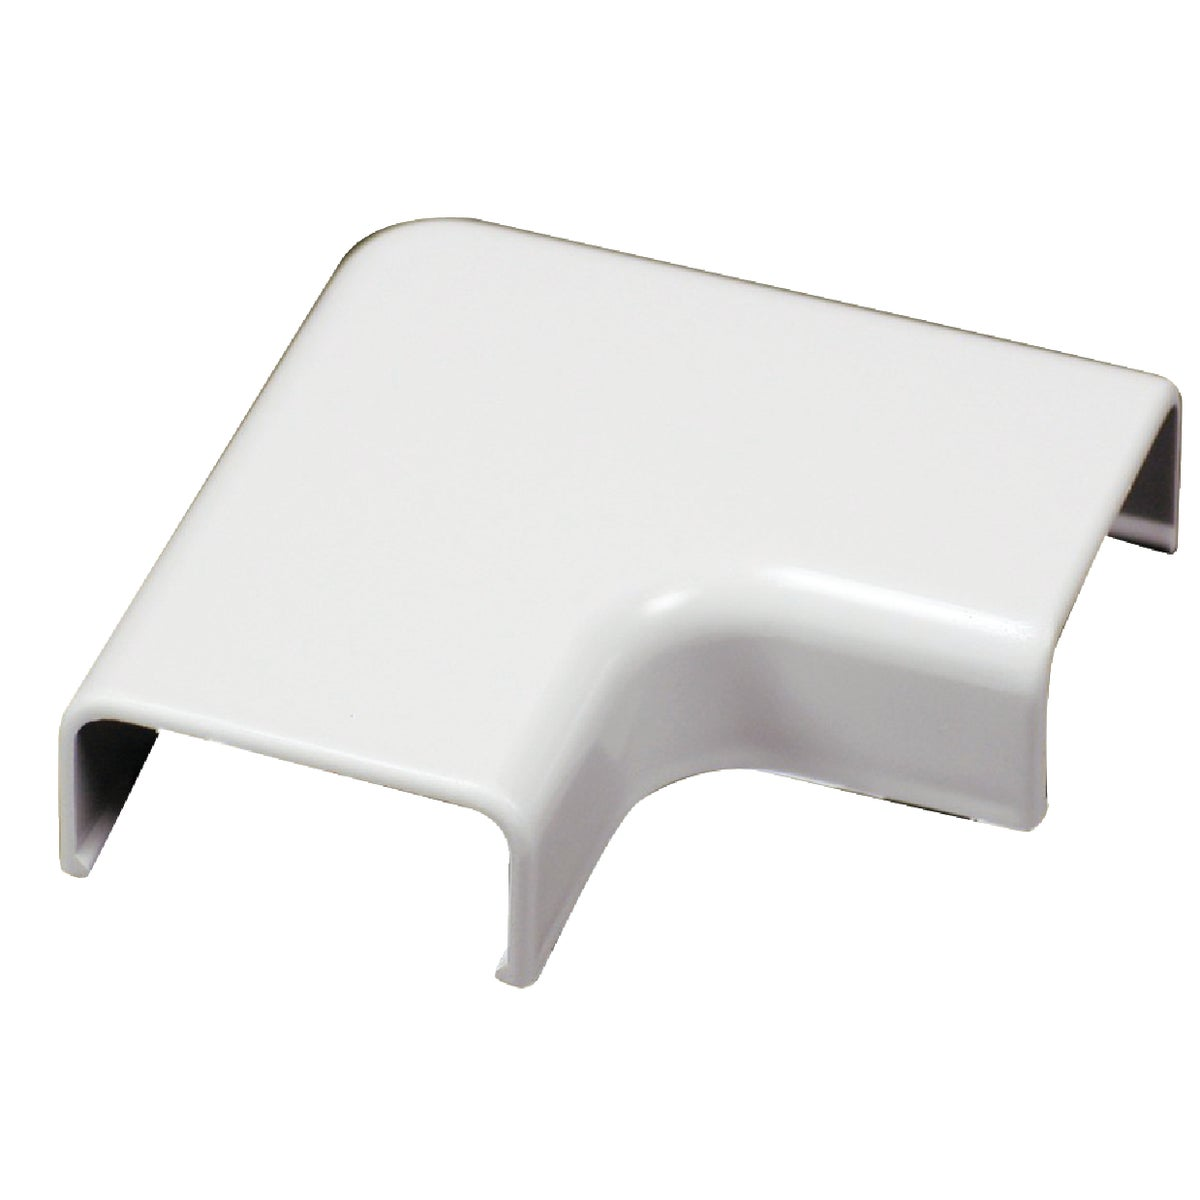 CORDMATE FLAT ELBOW - C56 by Wiremold / Legrand